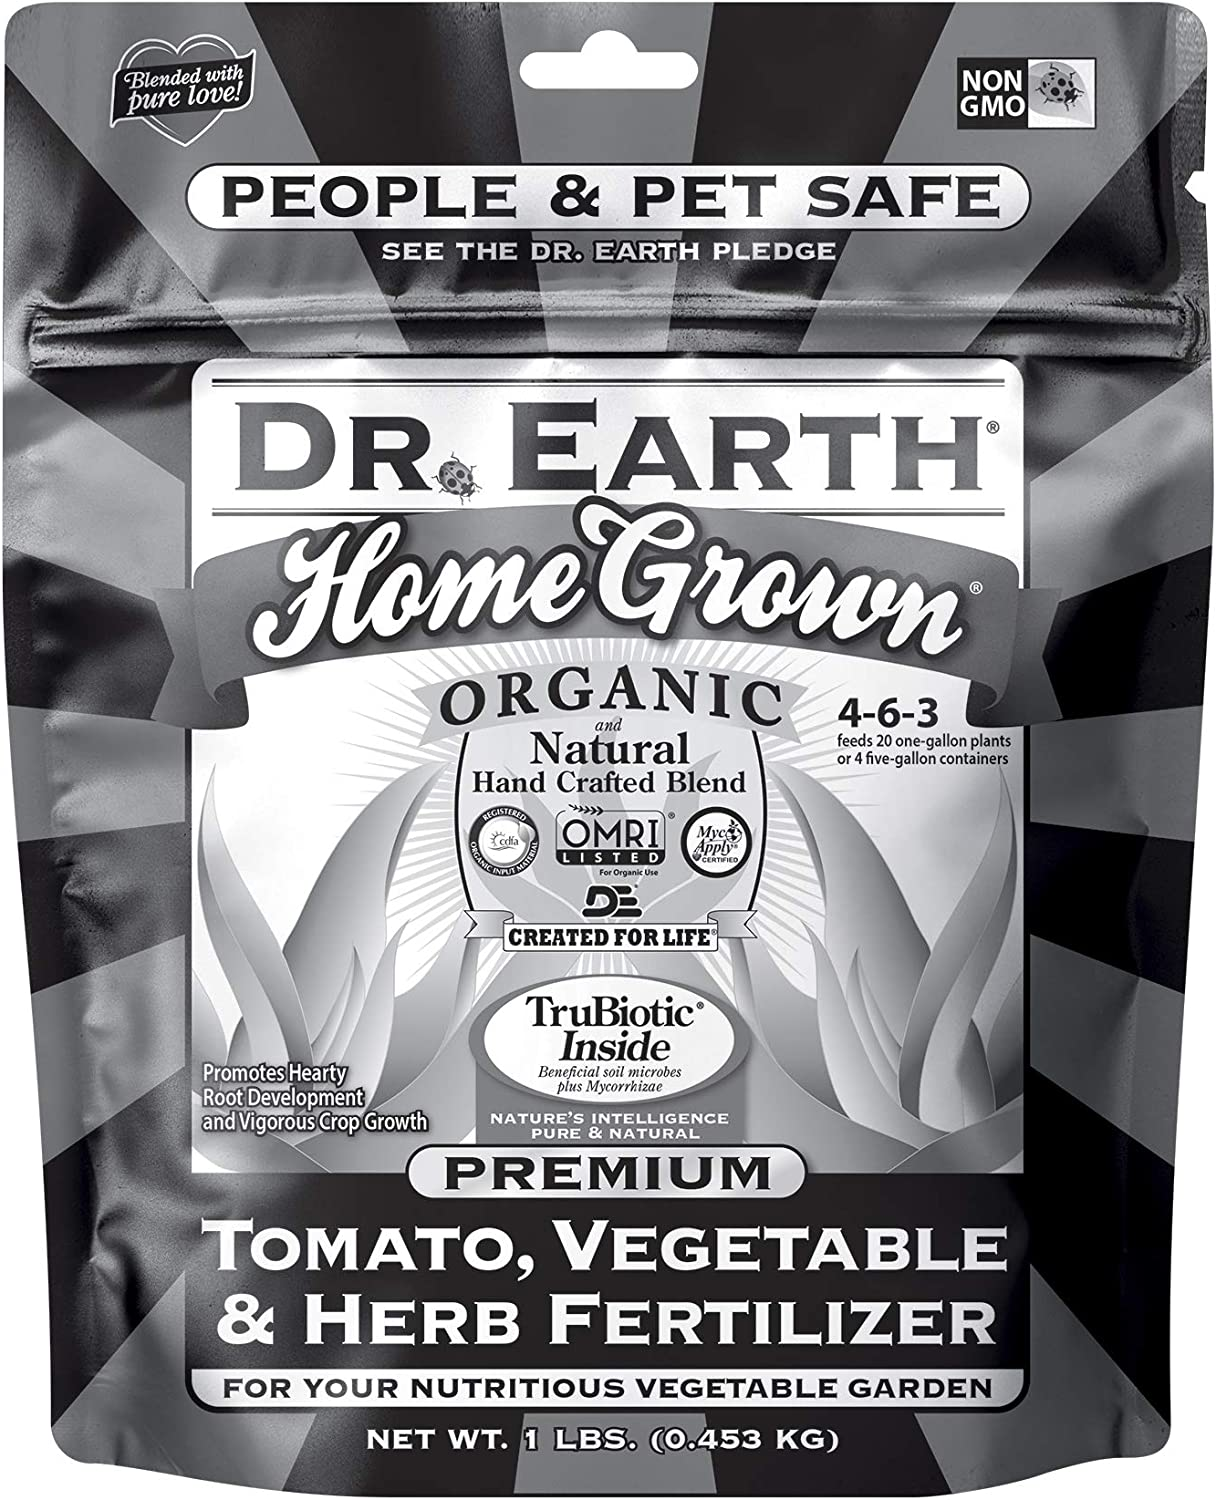 Dr. Earth Organic & Natural MINI Home Grown Tomato, Vegetable & Herb Fertilizer Black Bag ( 1 lbs )